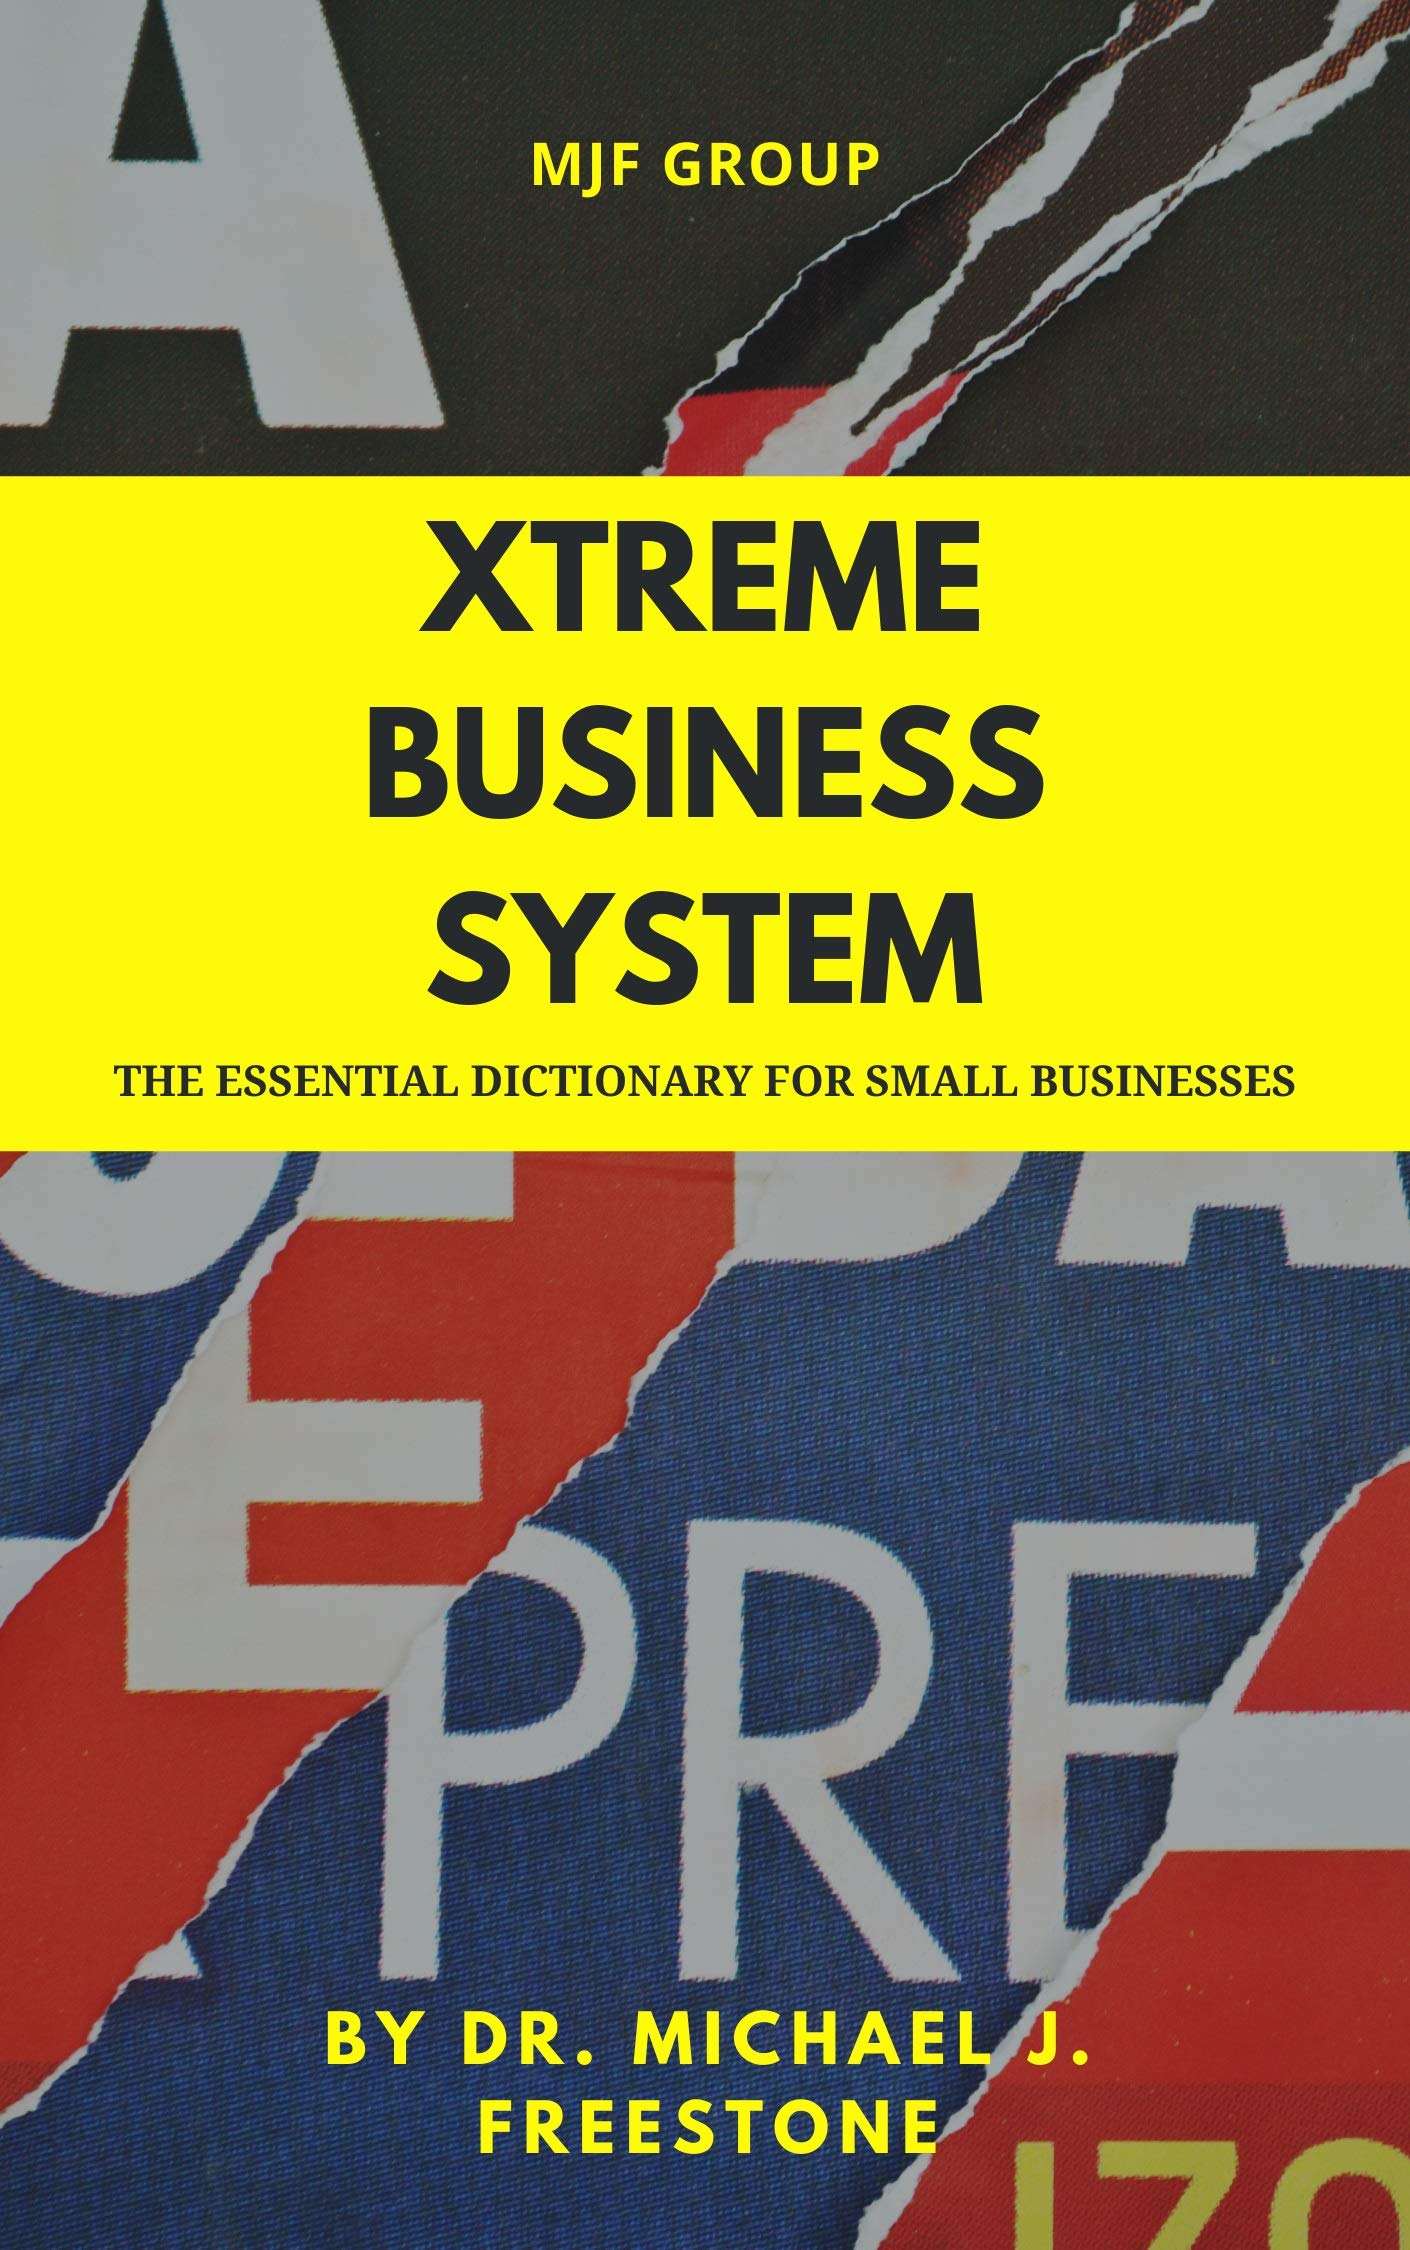 Xtreme Business System : Power strategies to catapult your business to the next level (Xtreme Business Systems Series 1)